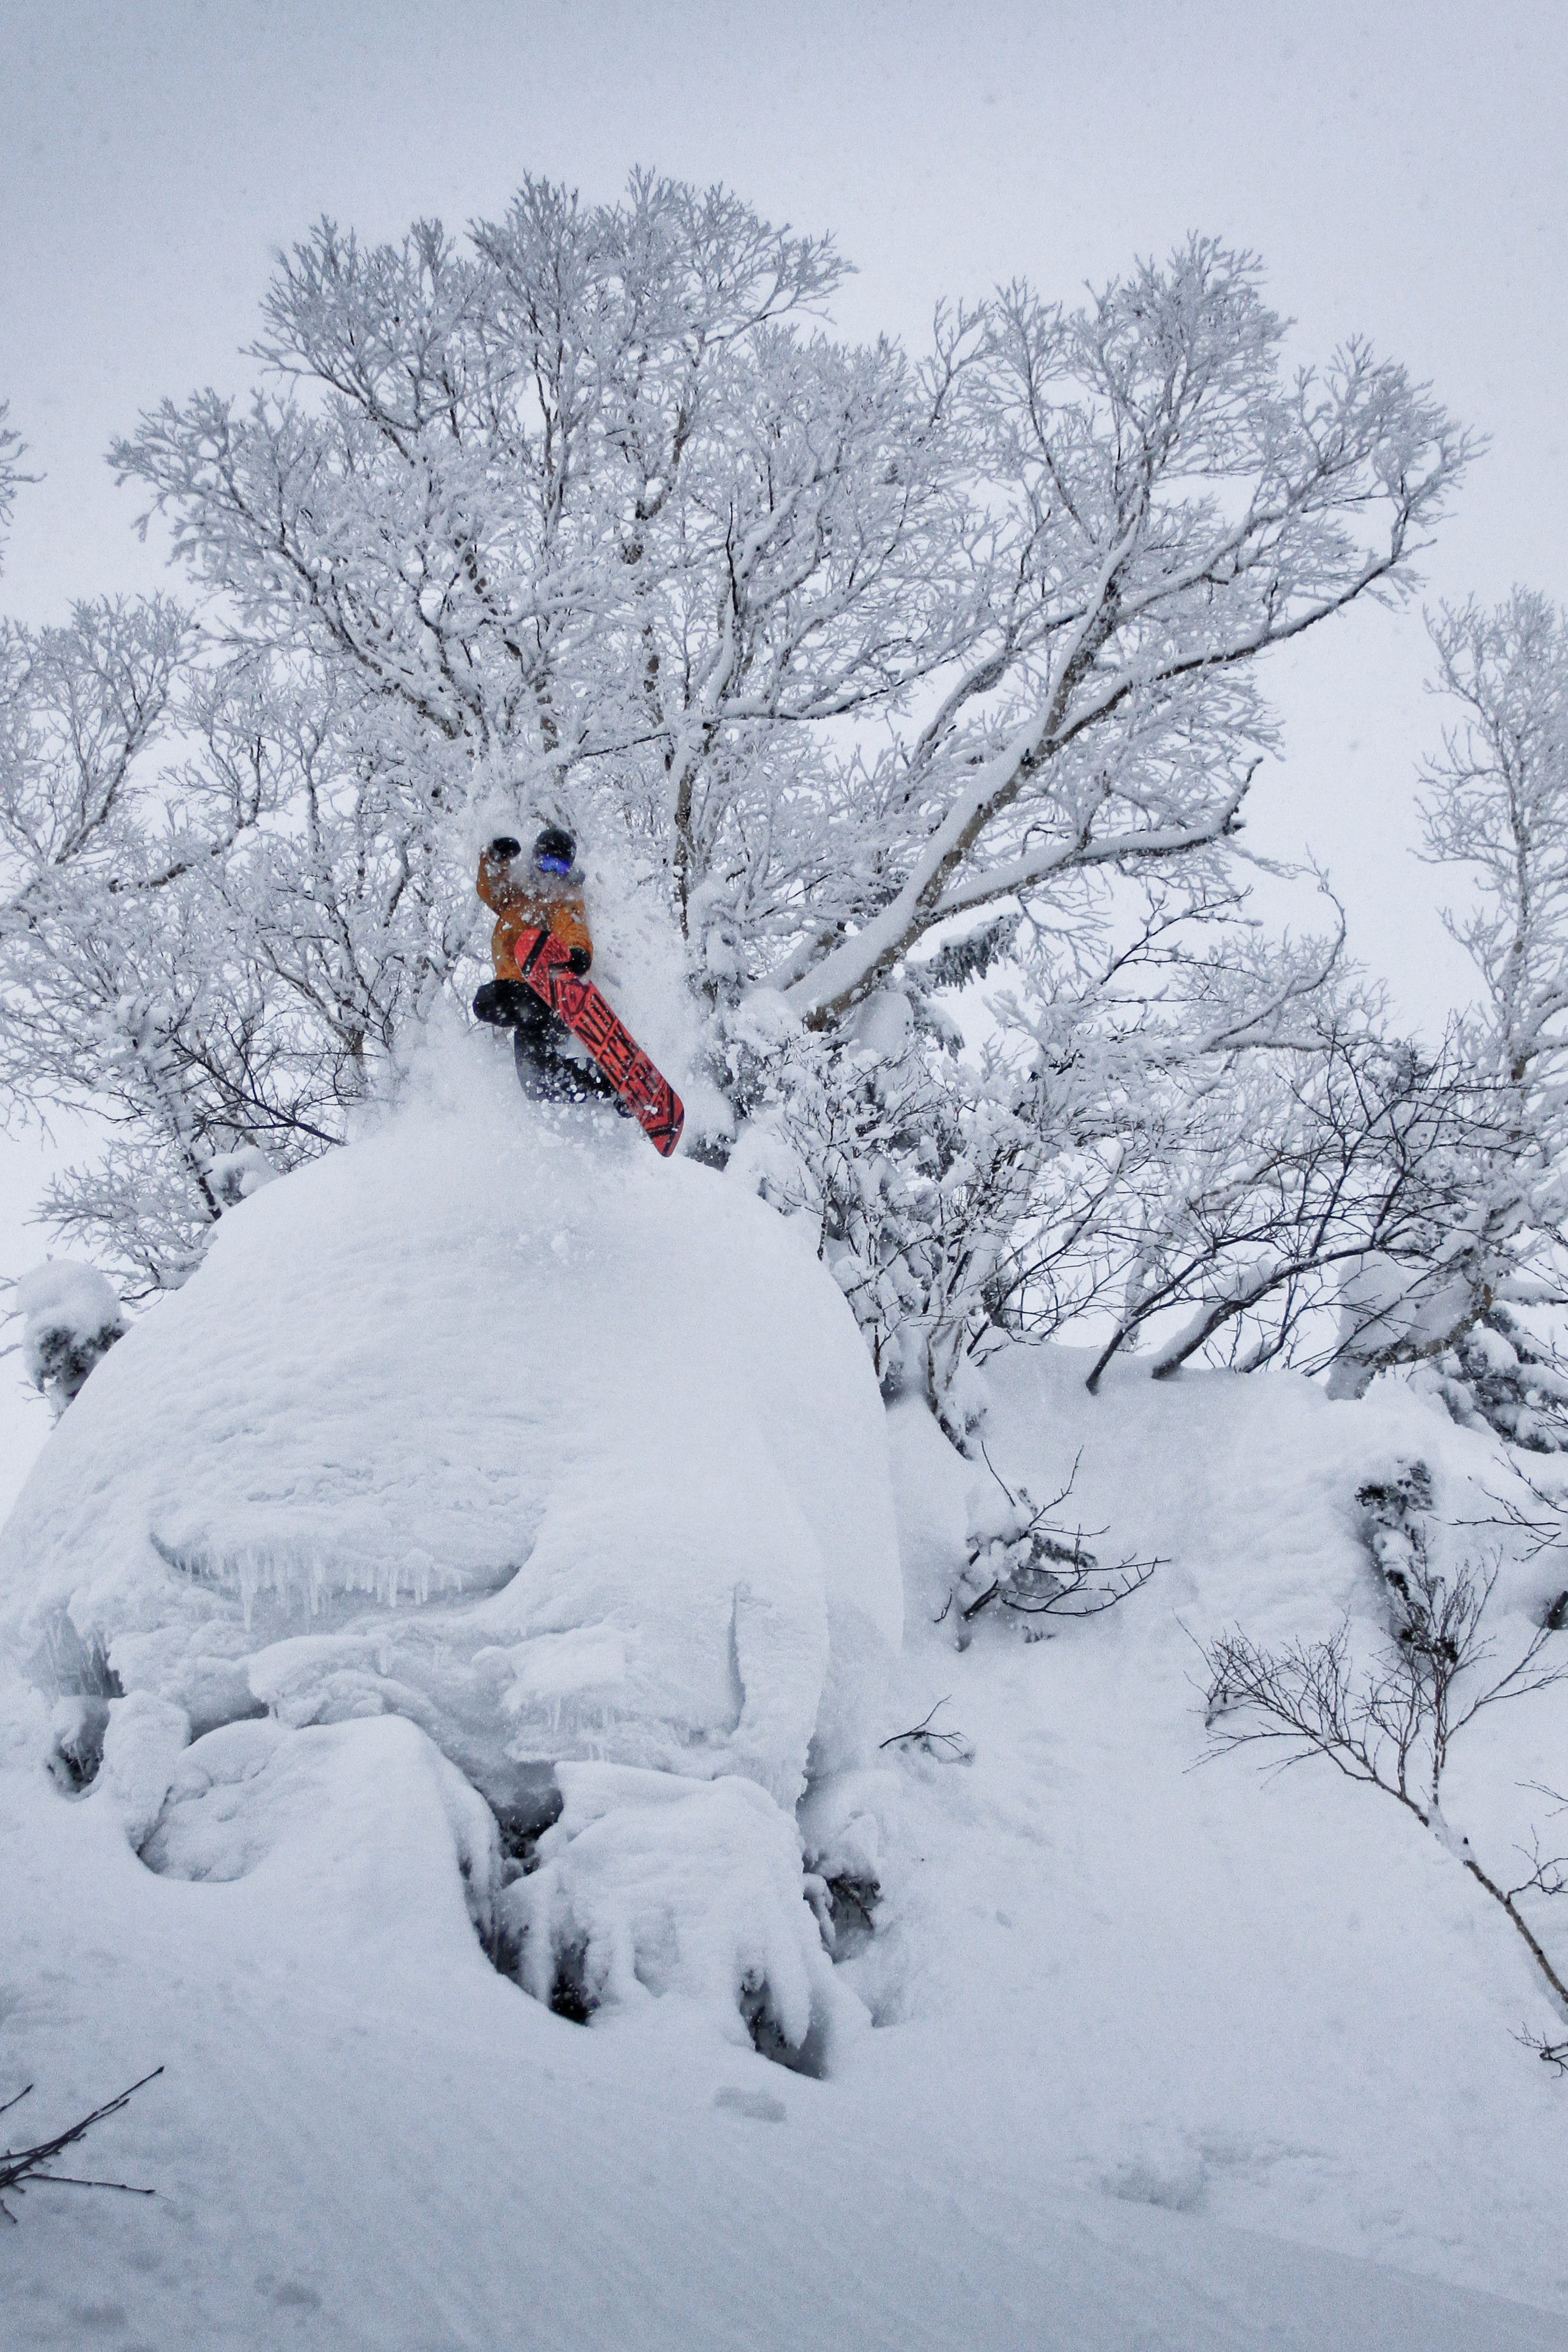 Backside Air in Japan Pow, Independent Snowboard School trip, pillow riding